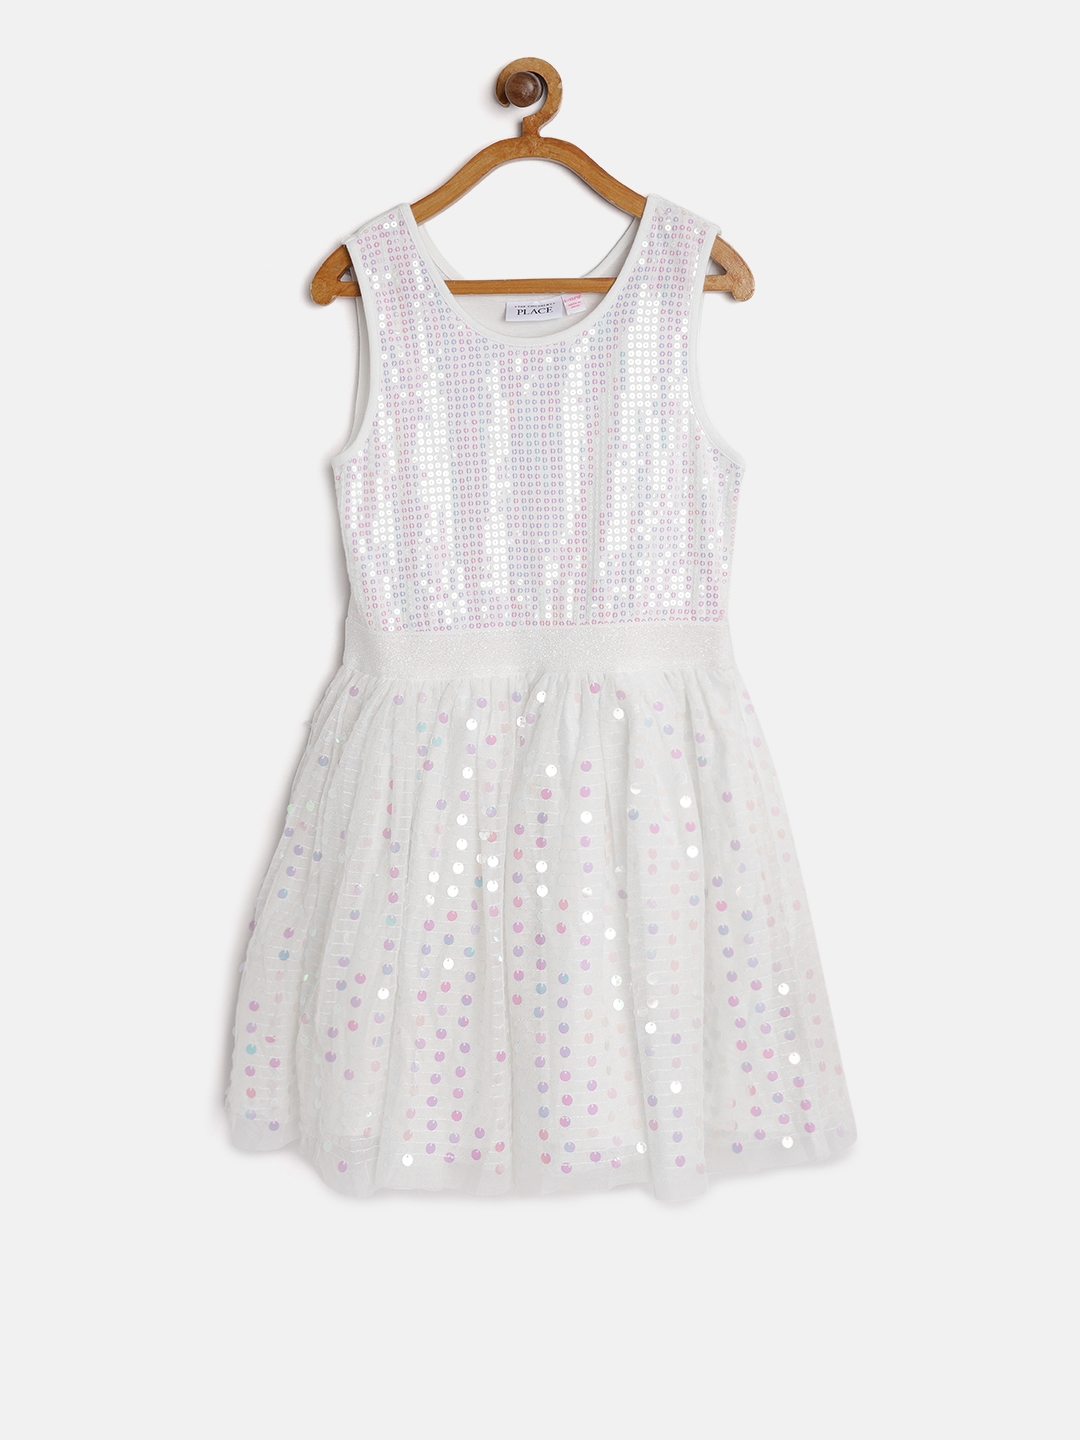 572132f86 Buy The Childrens Place Girls White Sequinned Fit   Flare Dress ...